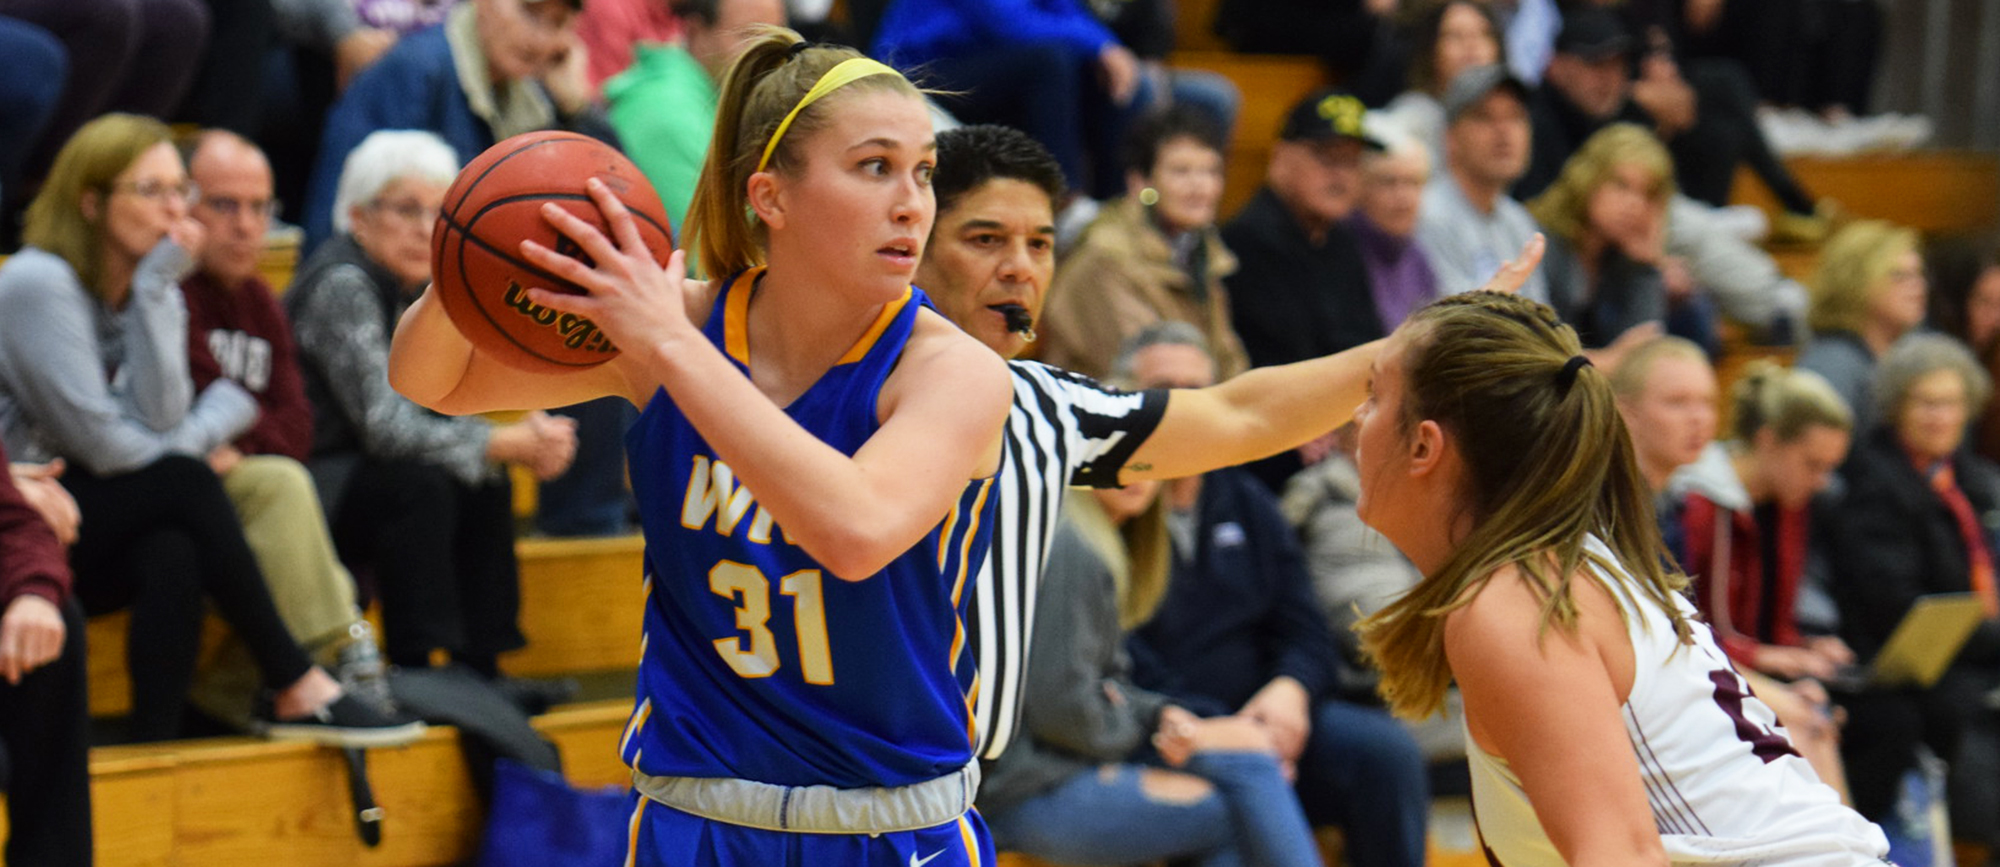 Meghan Orbann scored a game-high 19 points in Western New England's 51-40 loss to Springfield on Tuesday night. (Photo by Rachael Margossian)